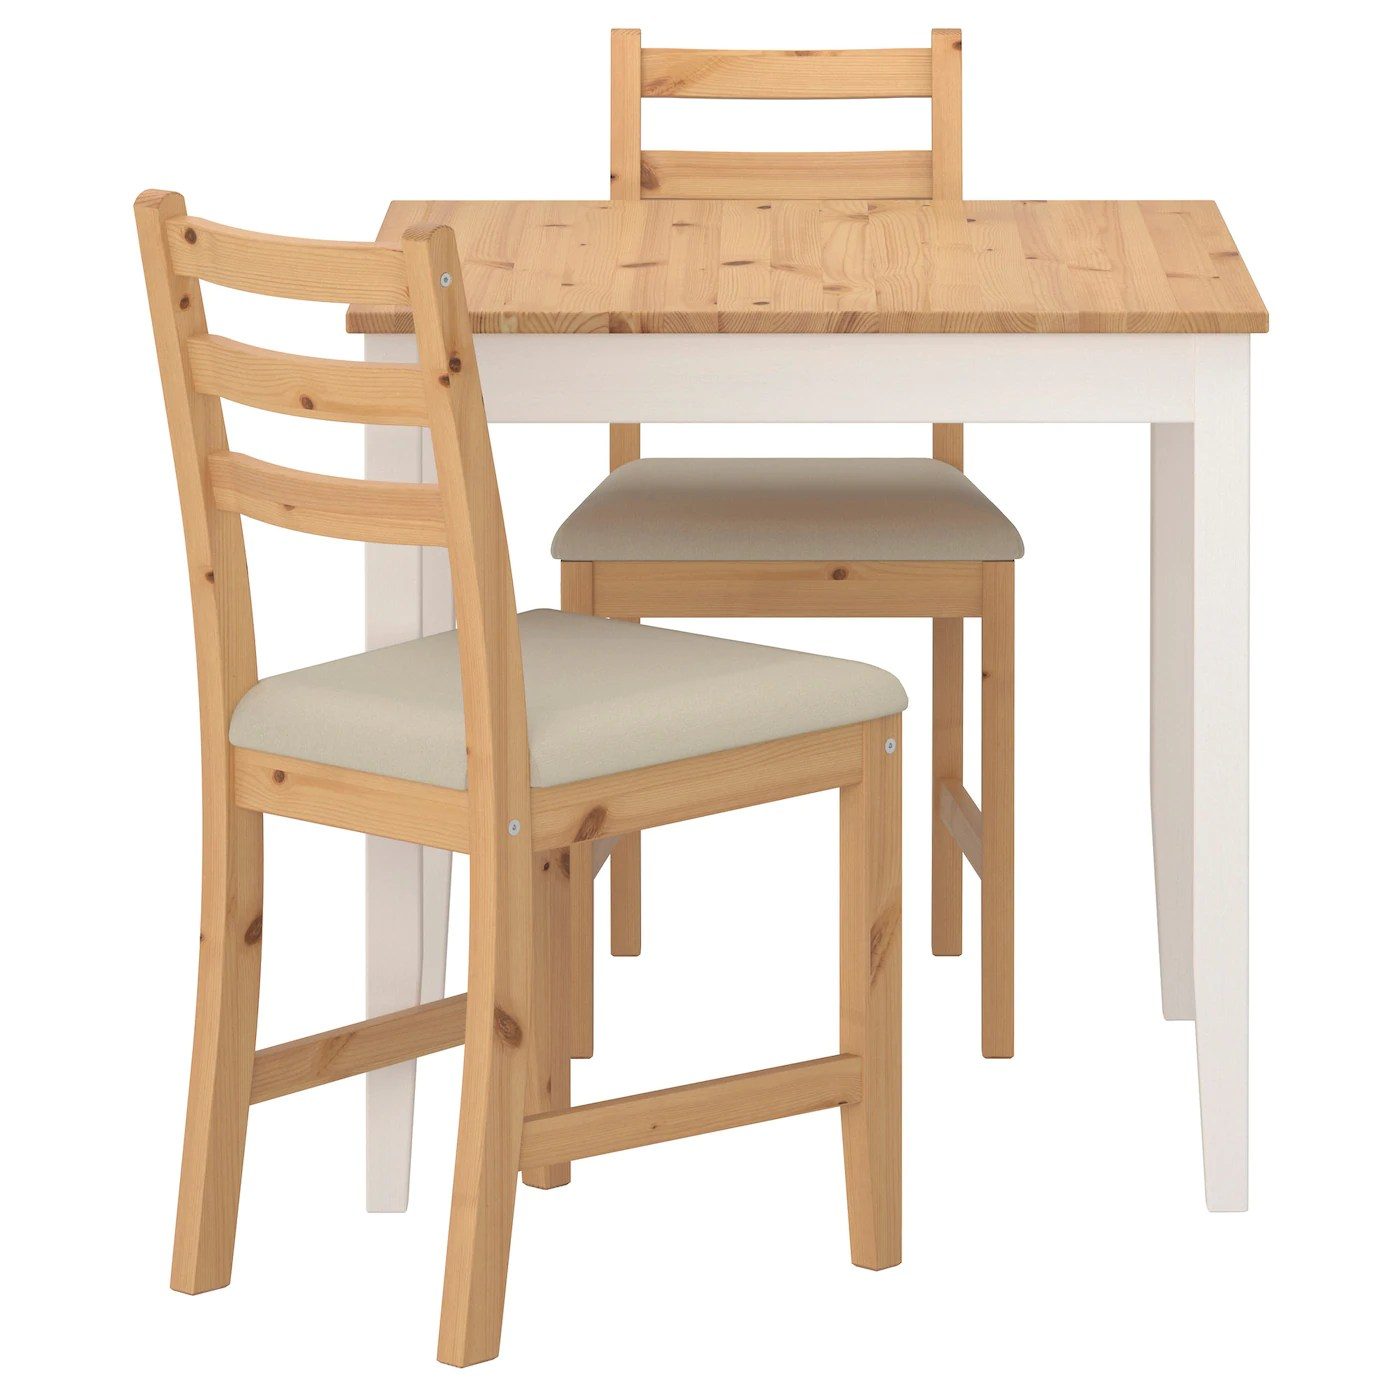 Table With Two Chairs Lerhamn Table And 2 Chairs Light Antique Stain Ramna Beige